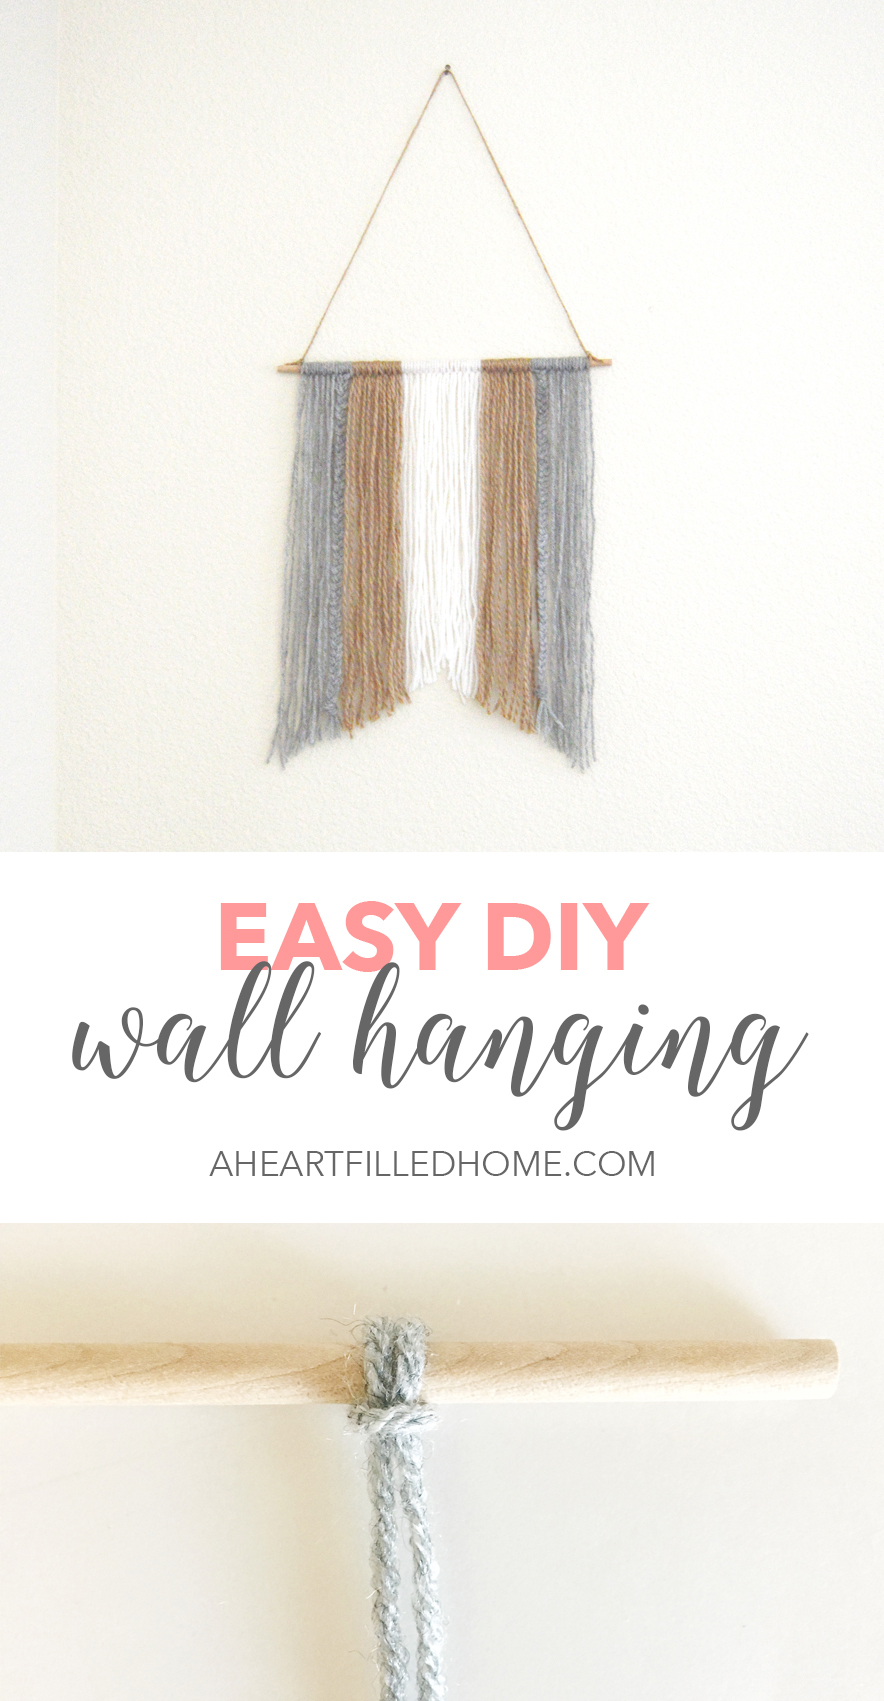 How to make an easy DIY wall hanging! Visit aheartfilledhome.com to find the simple tutorial!